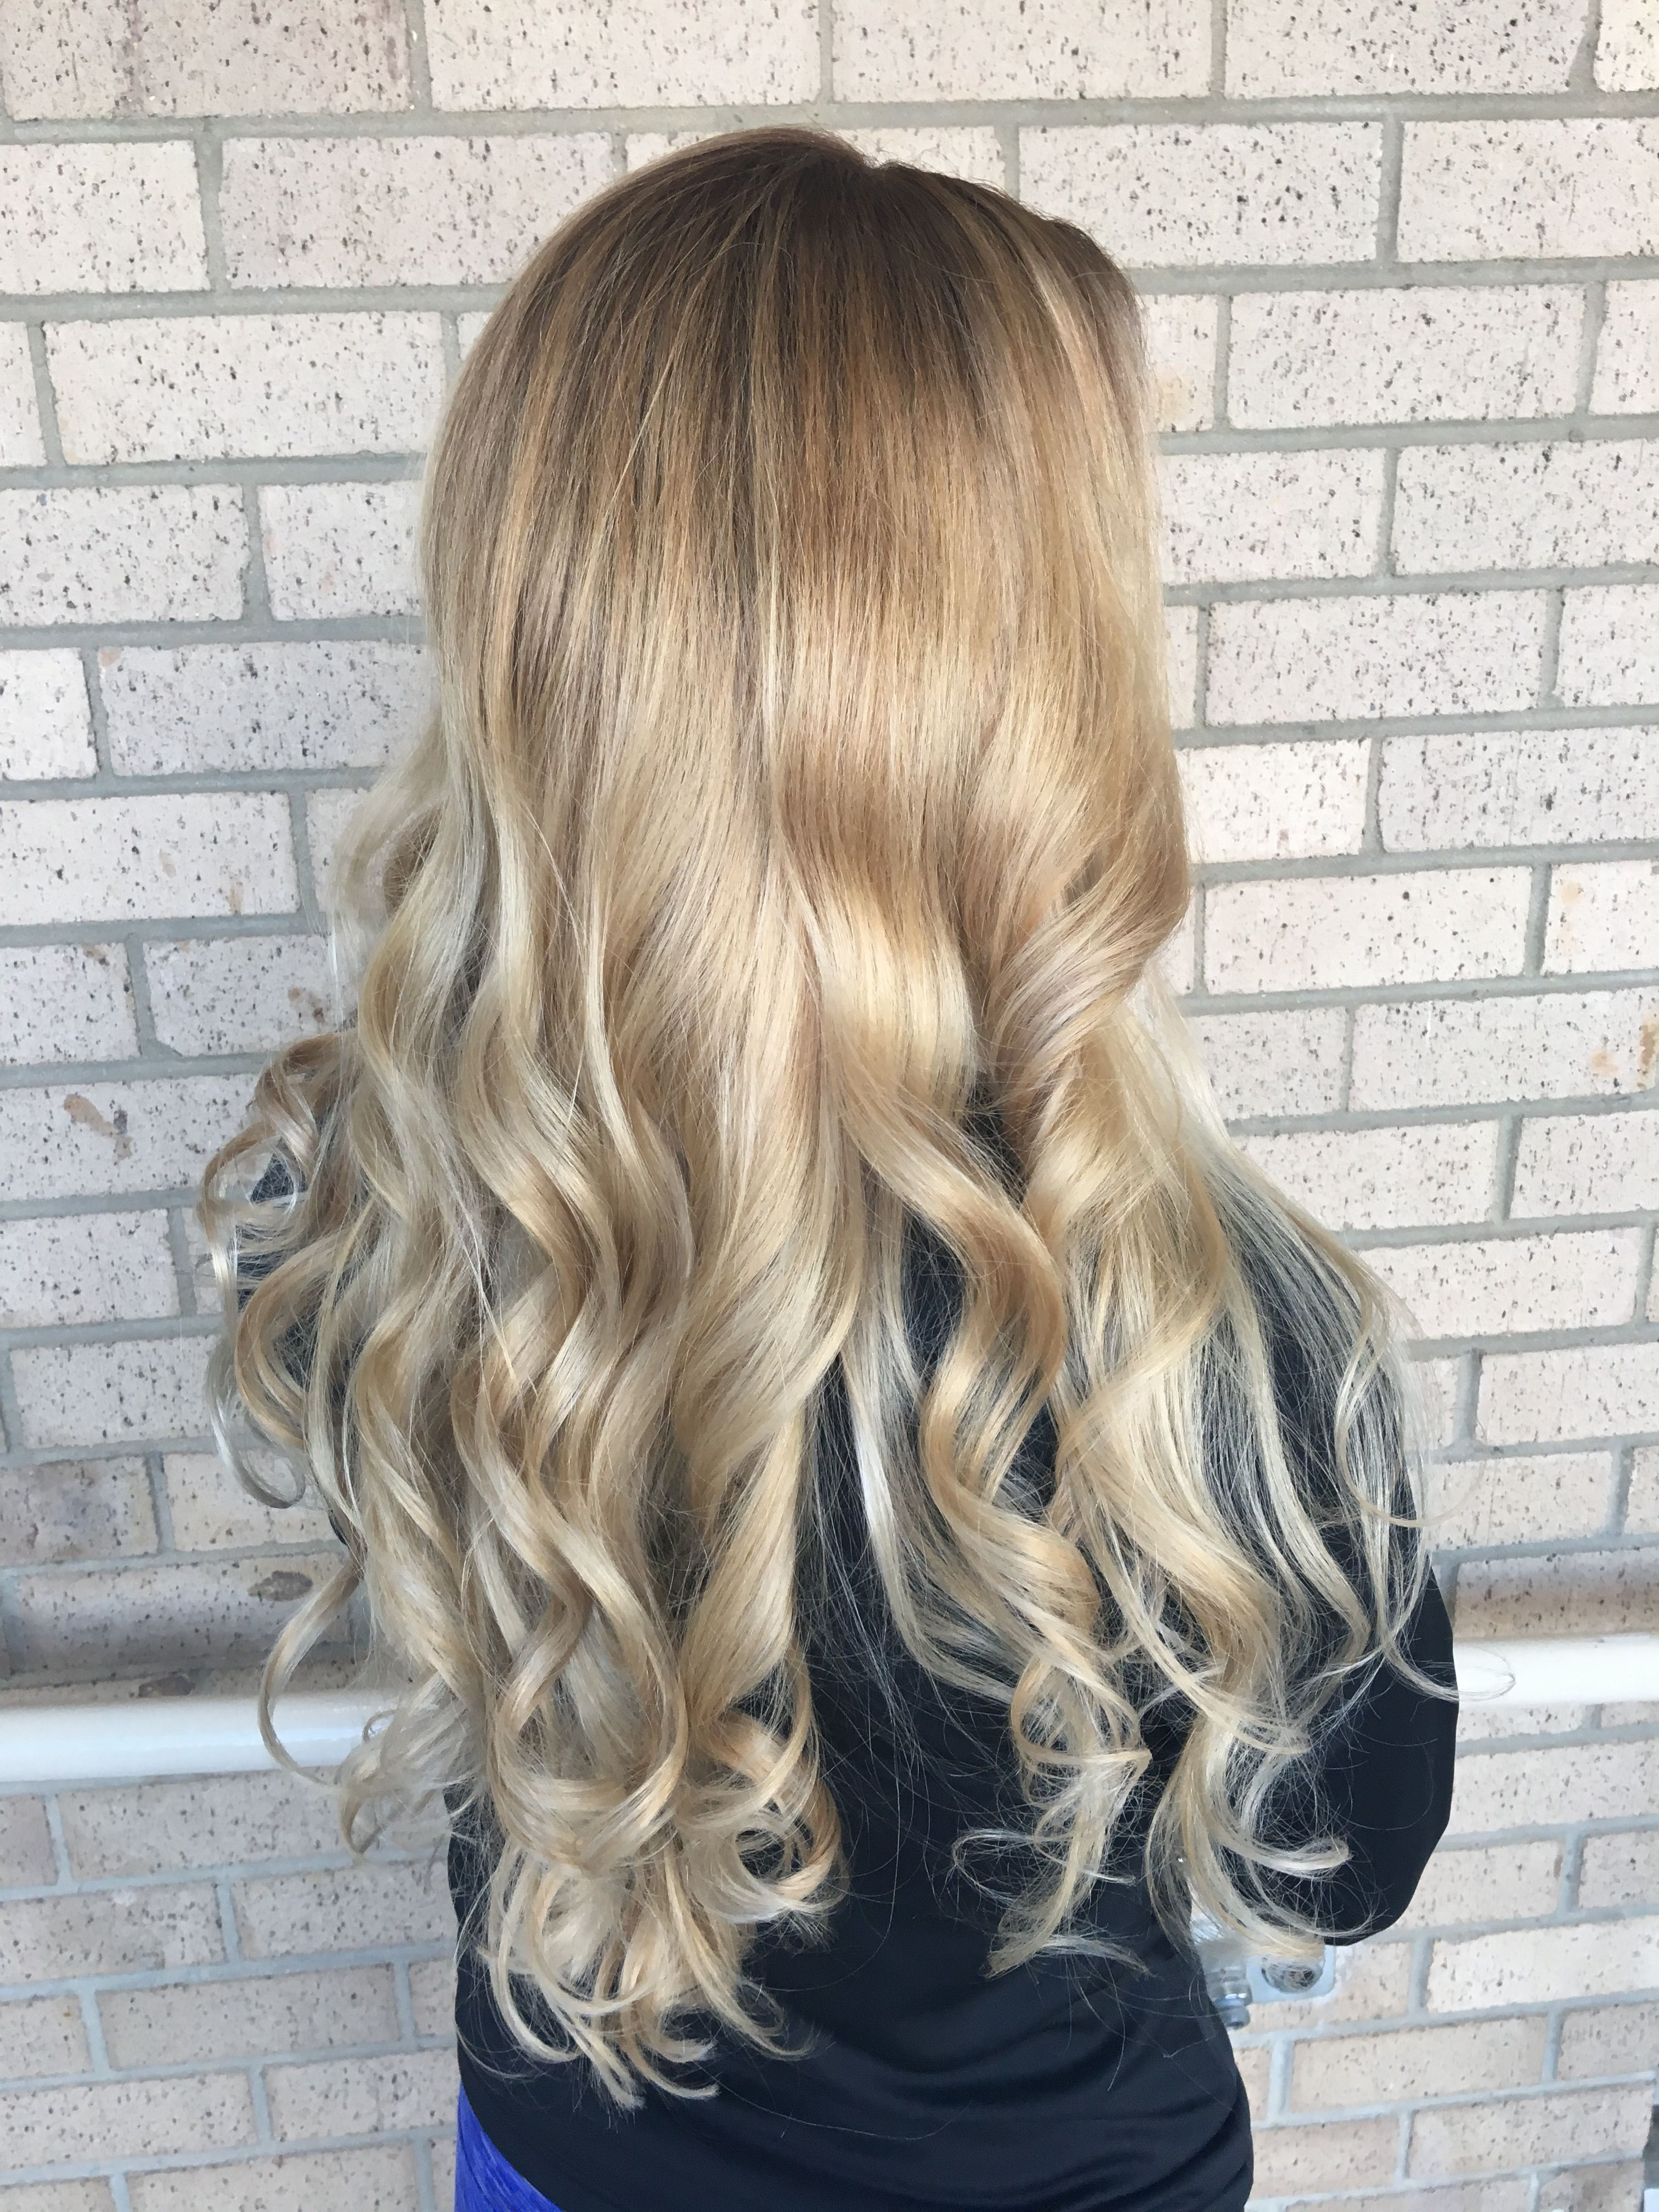 Pin by Madison C. on No more bad hair days! | Long hair ...